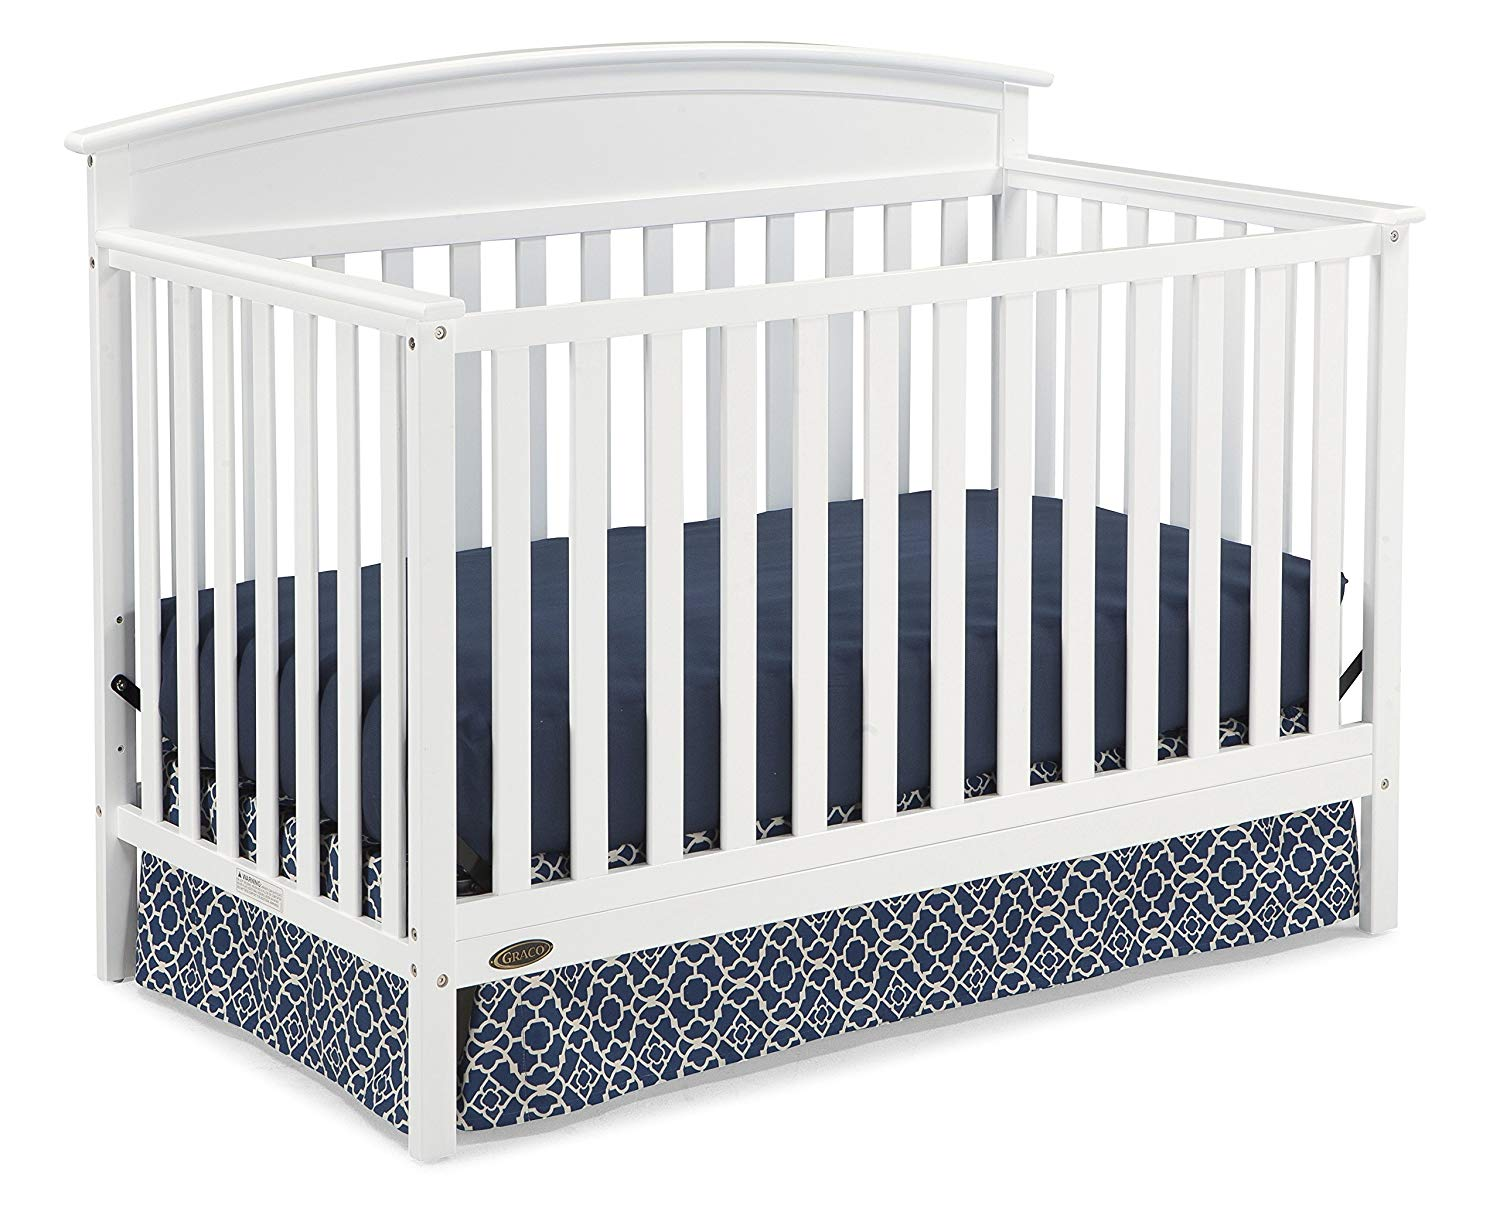 Graco Best Cribs Review by www.snoremagazine.com